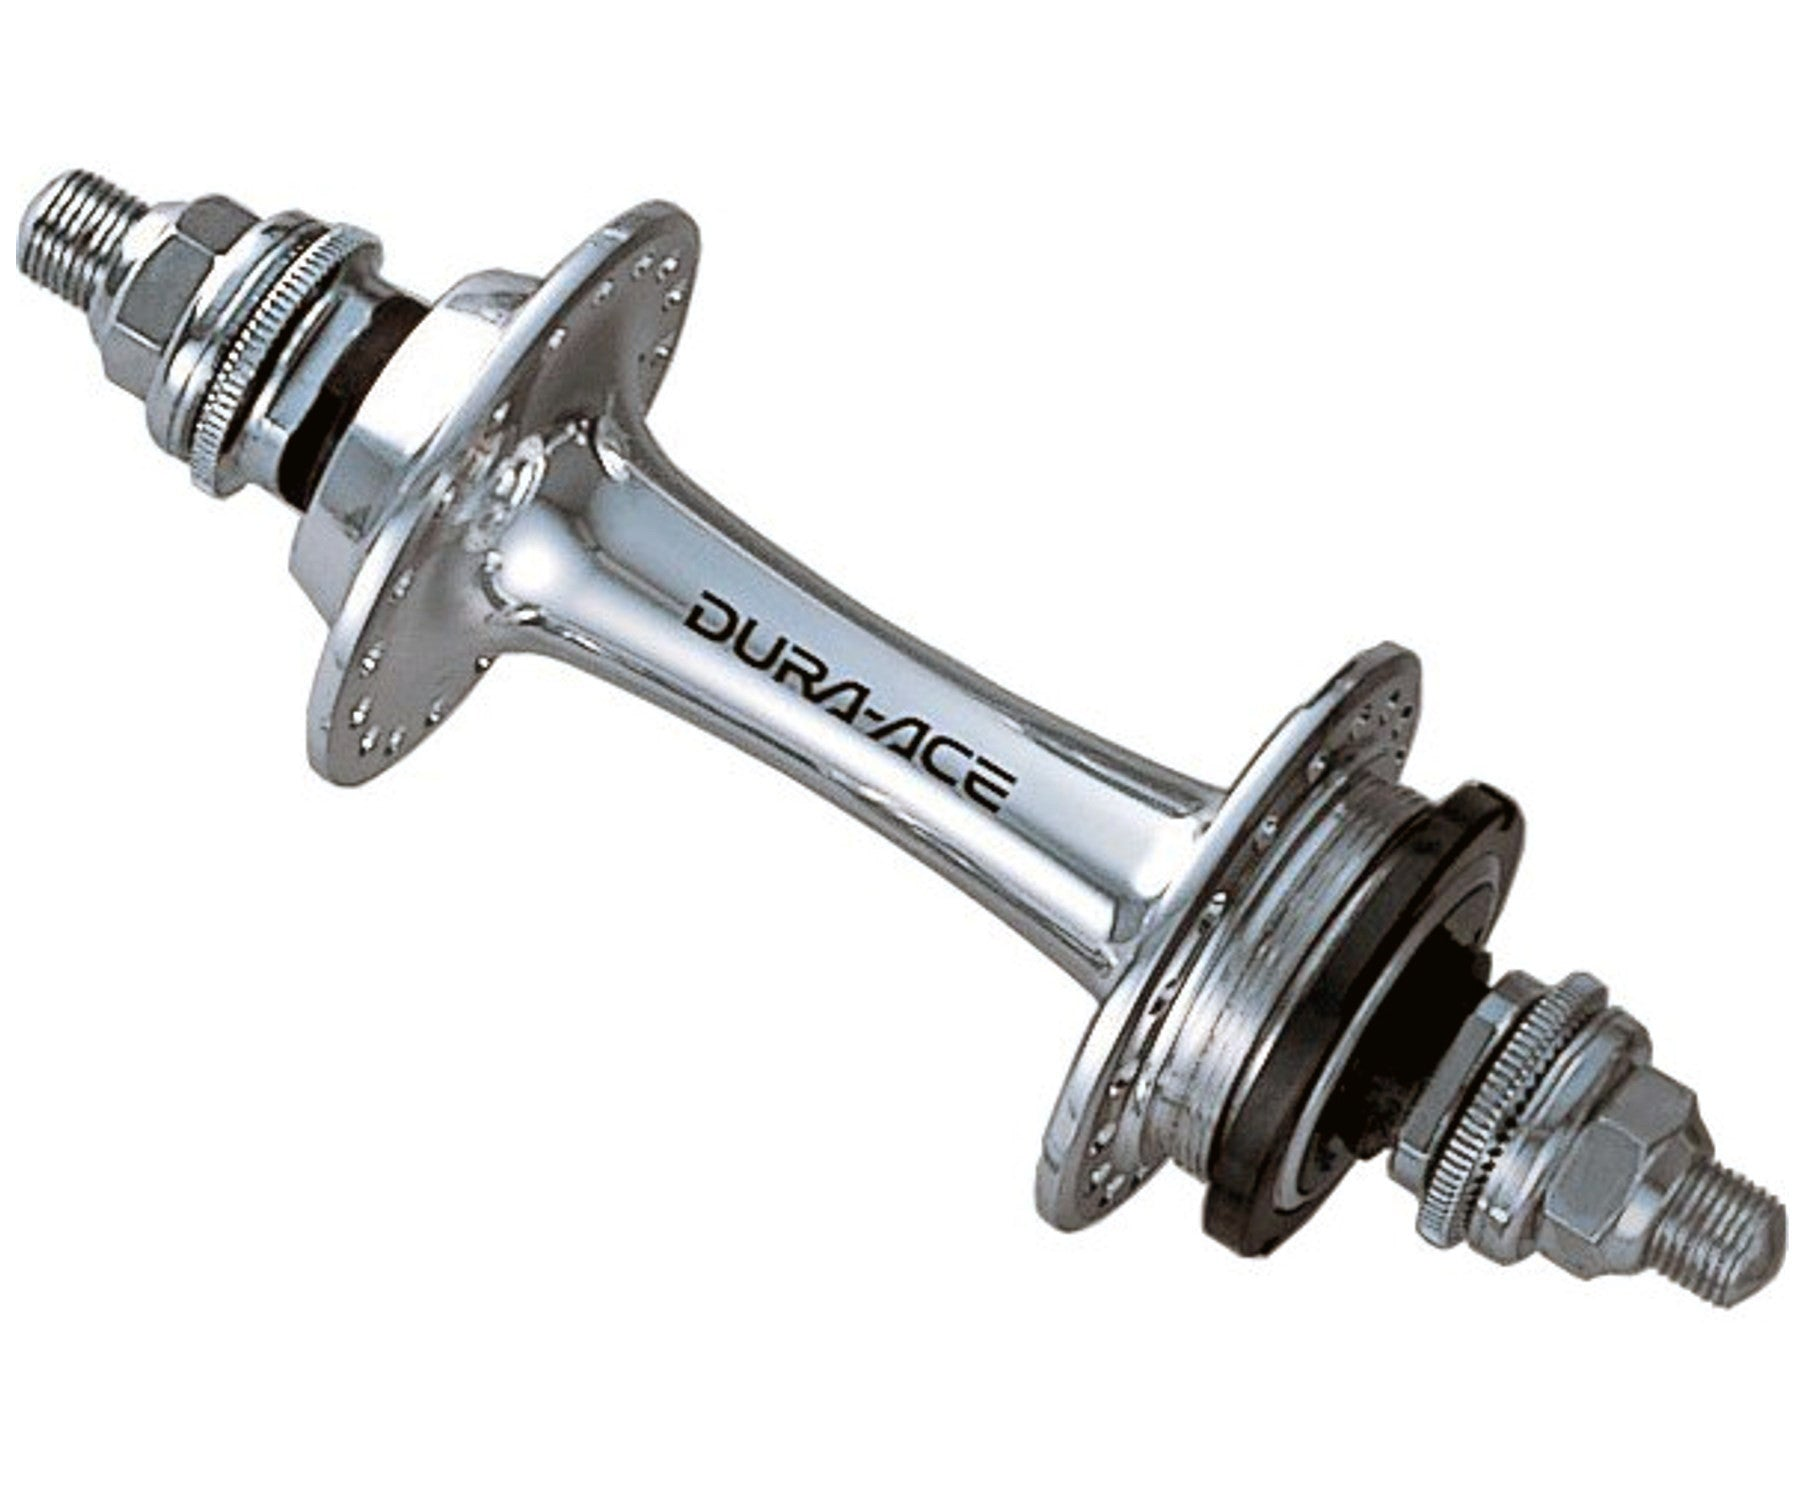 Shimano Dura Ace 7710 low flange rear hub